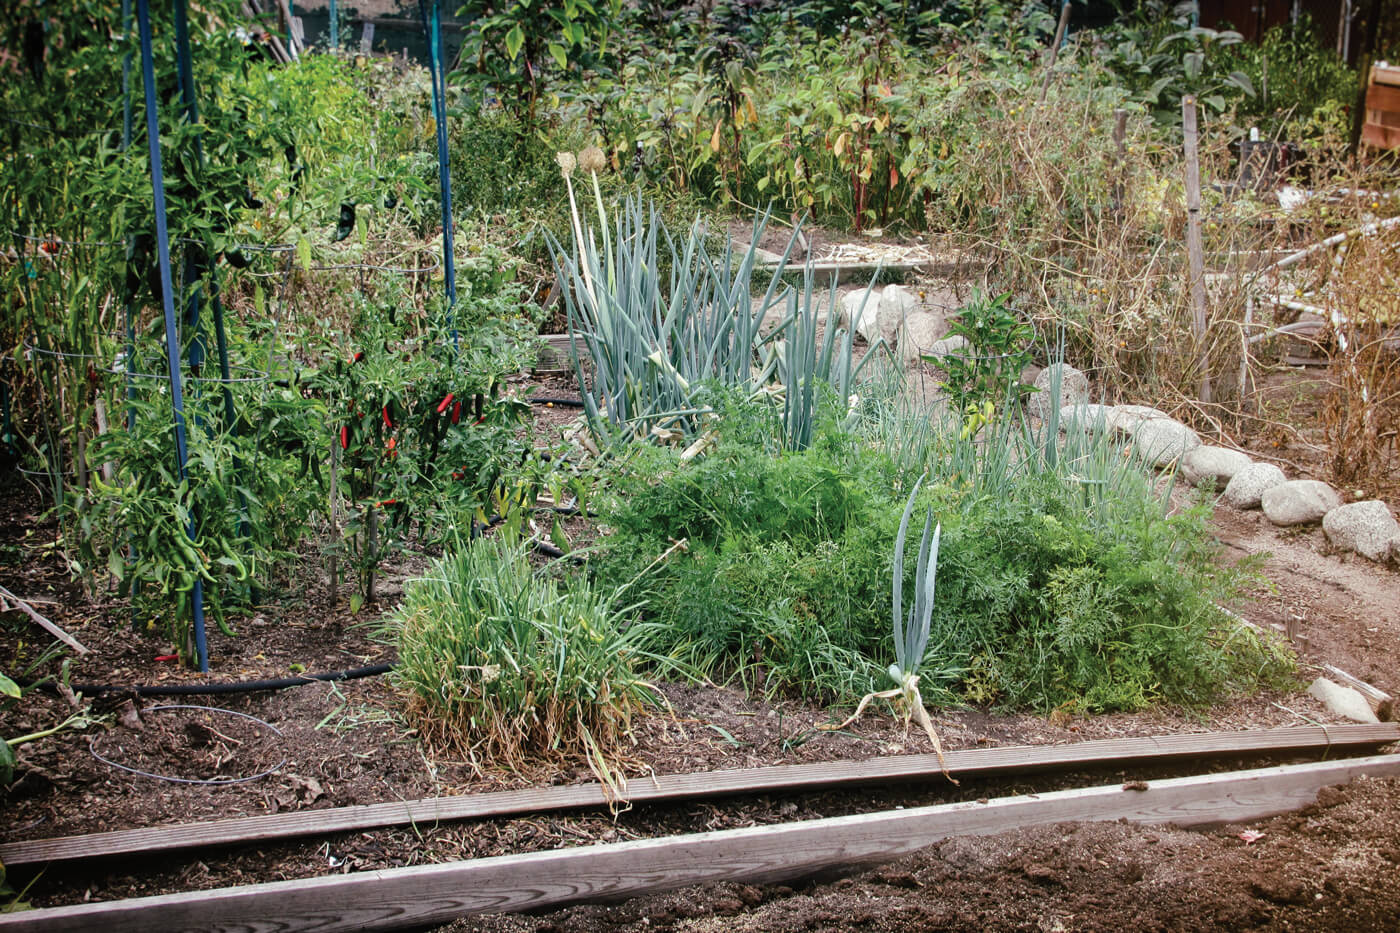 Vegetables planted in bunches with narrow paths lines with stone.